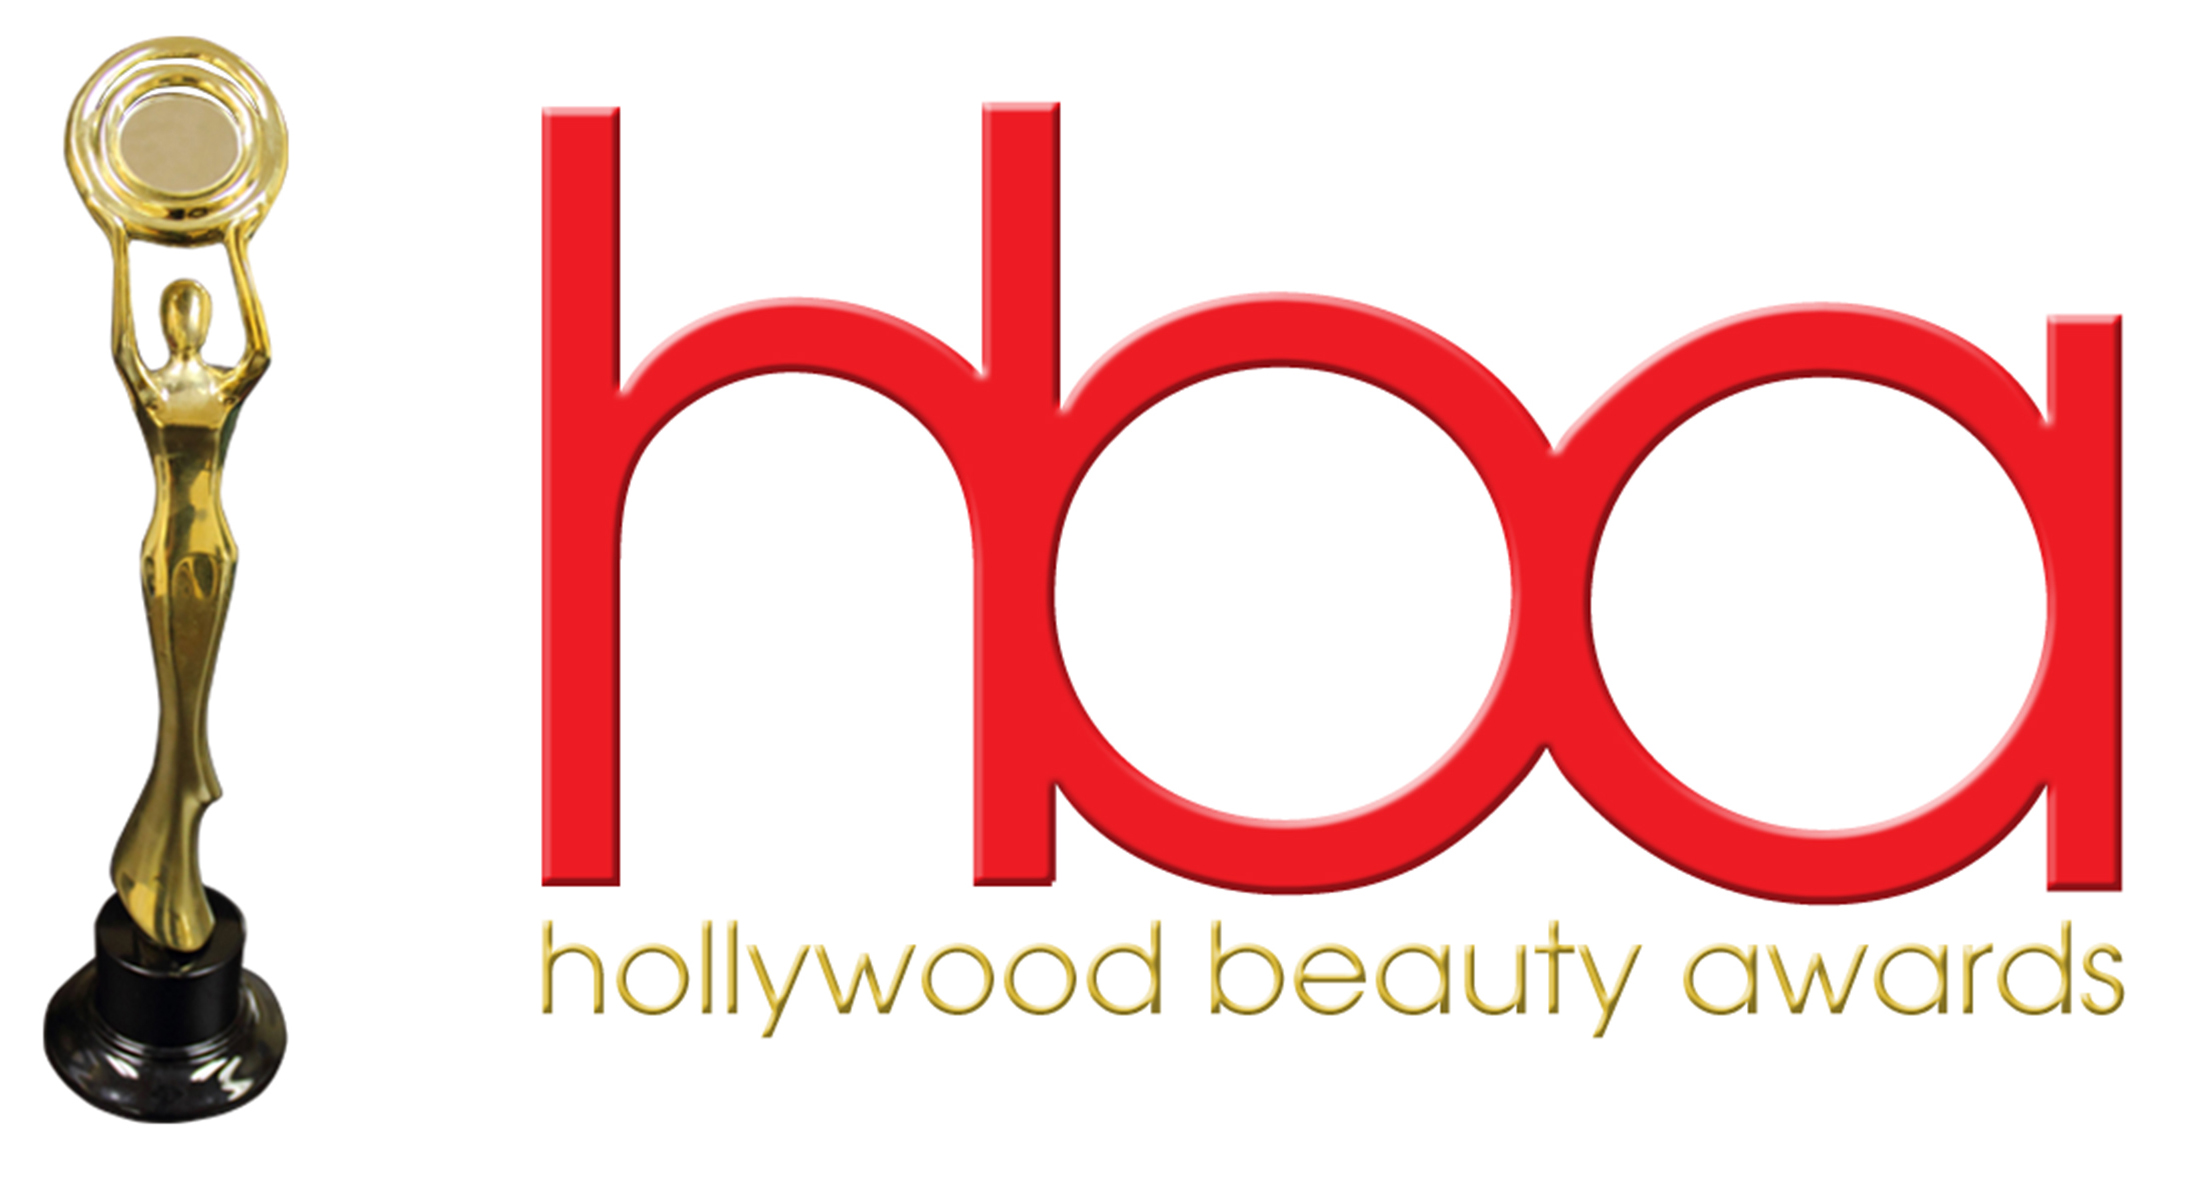 2019 hollywood beauty awards photography, styling honorees and nominees